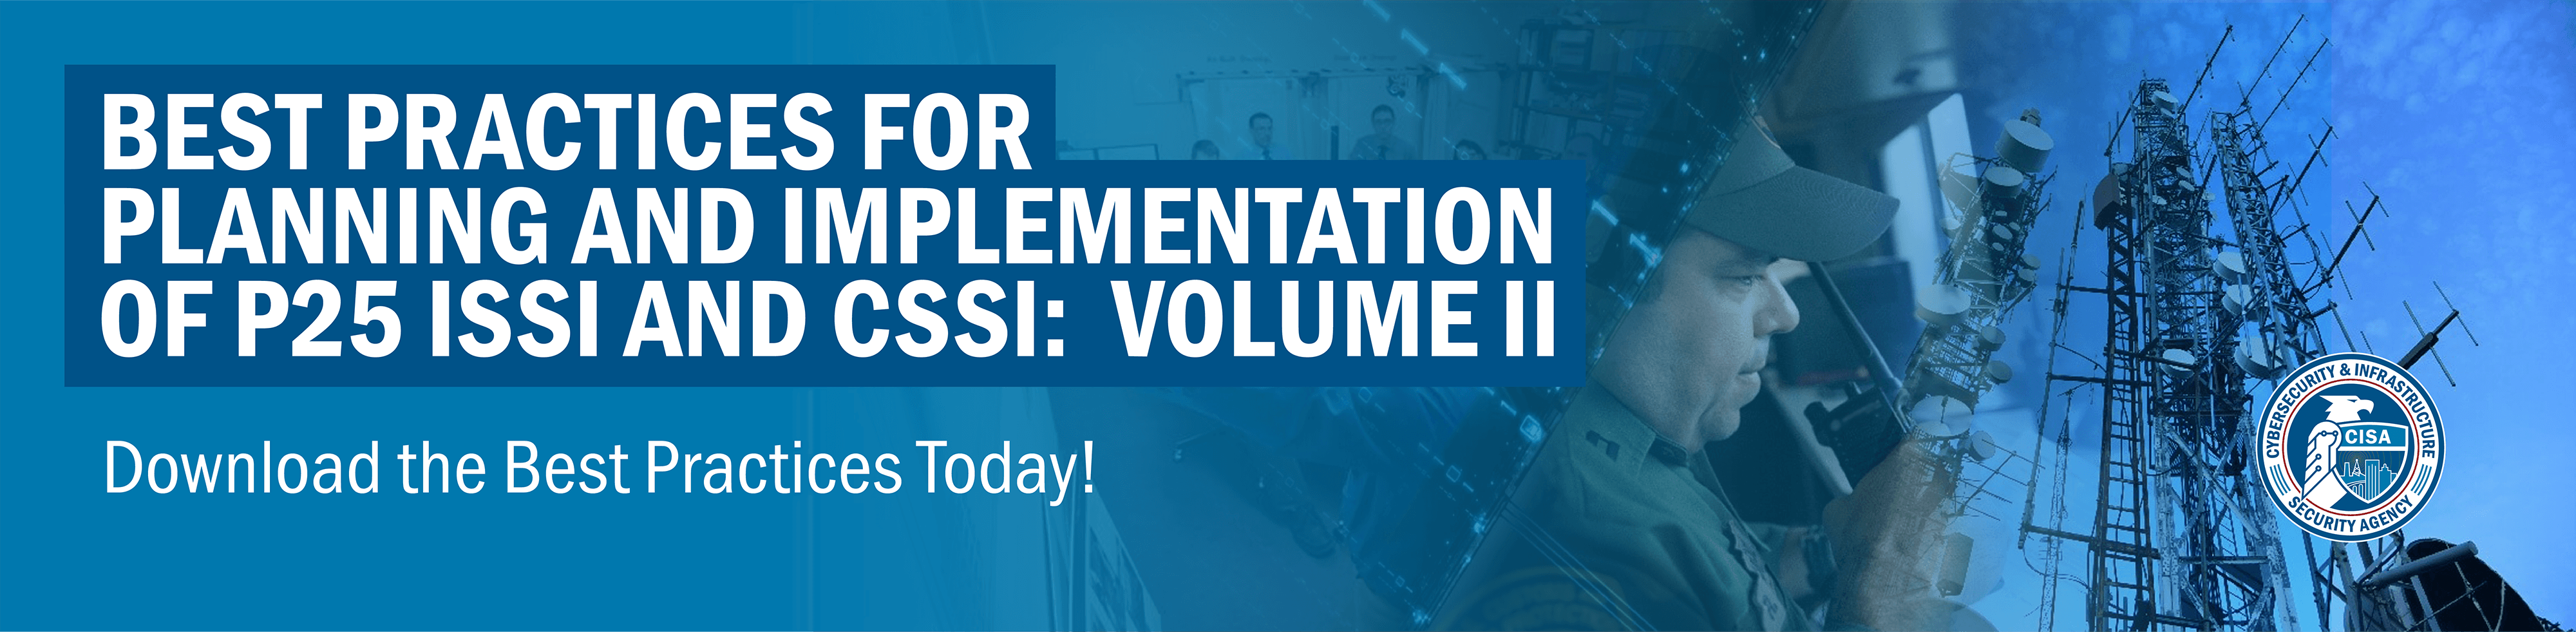 Best Practices For Planning And Implmentation of P25 ISSI And CSSI:  Volume II.  Download the Best Practices Today!